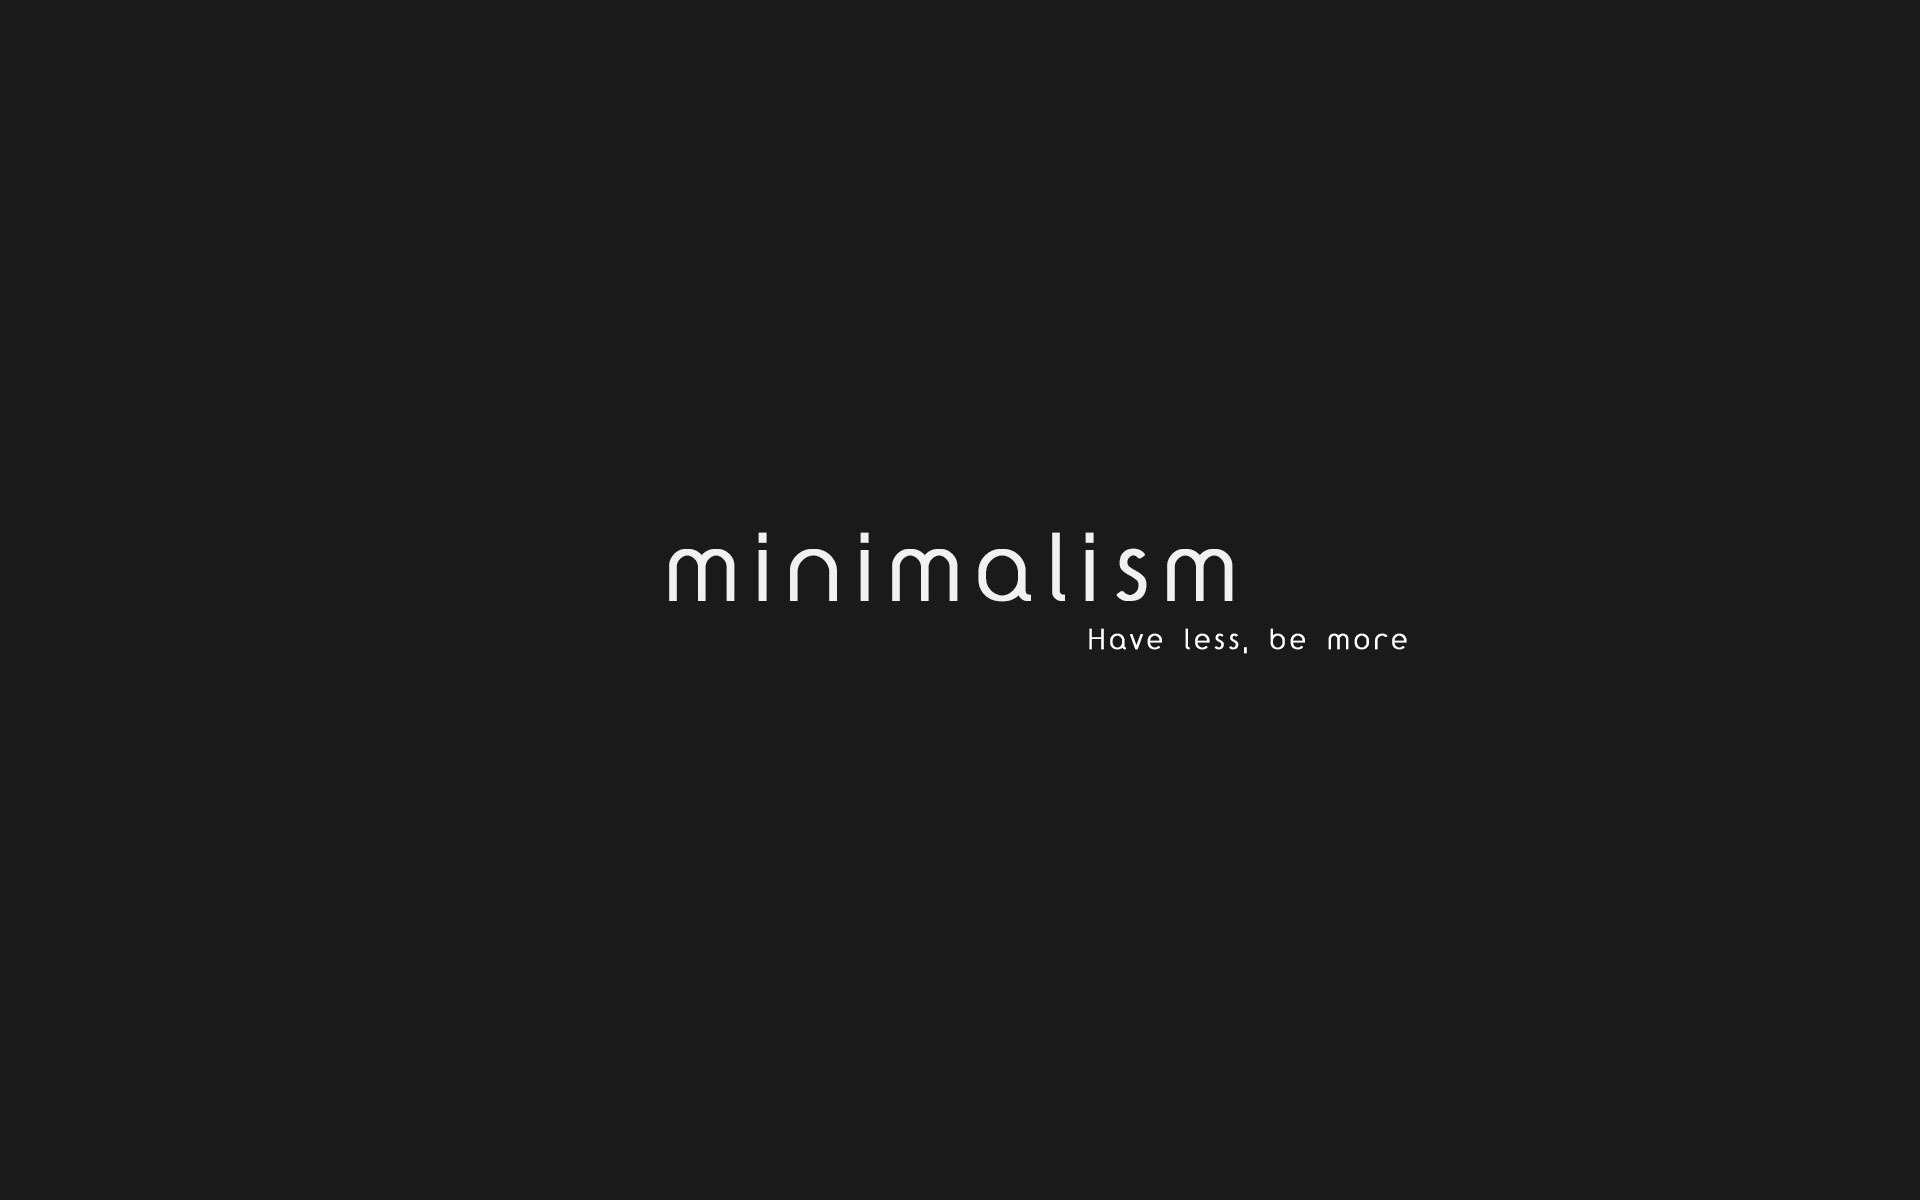 minimalism typography hd wallpaper 1920x1200 6093 1920x1200